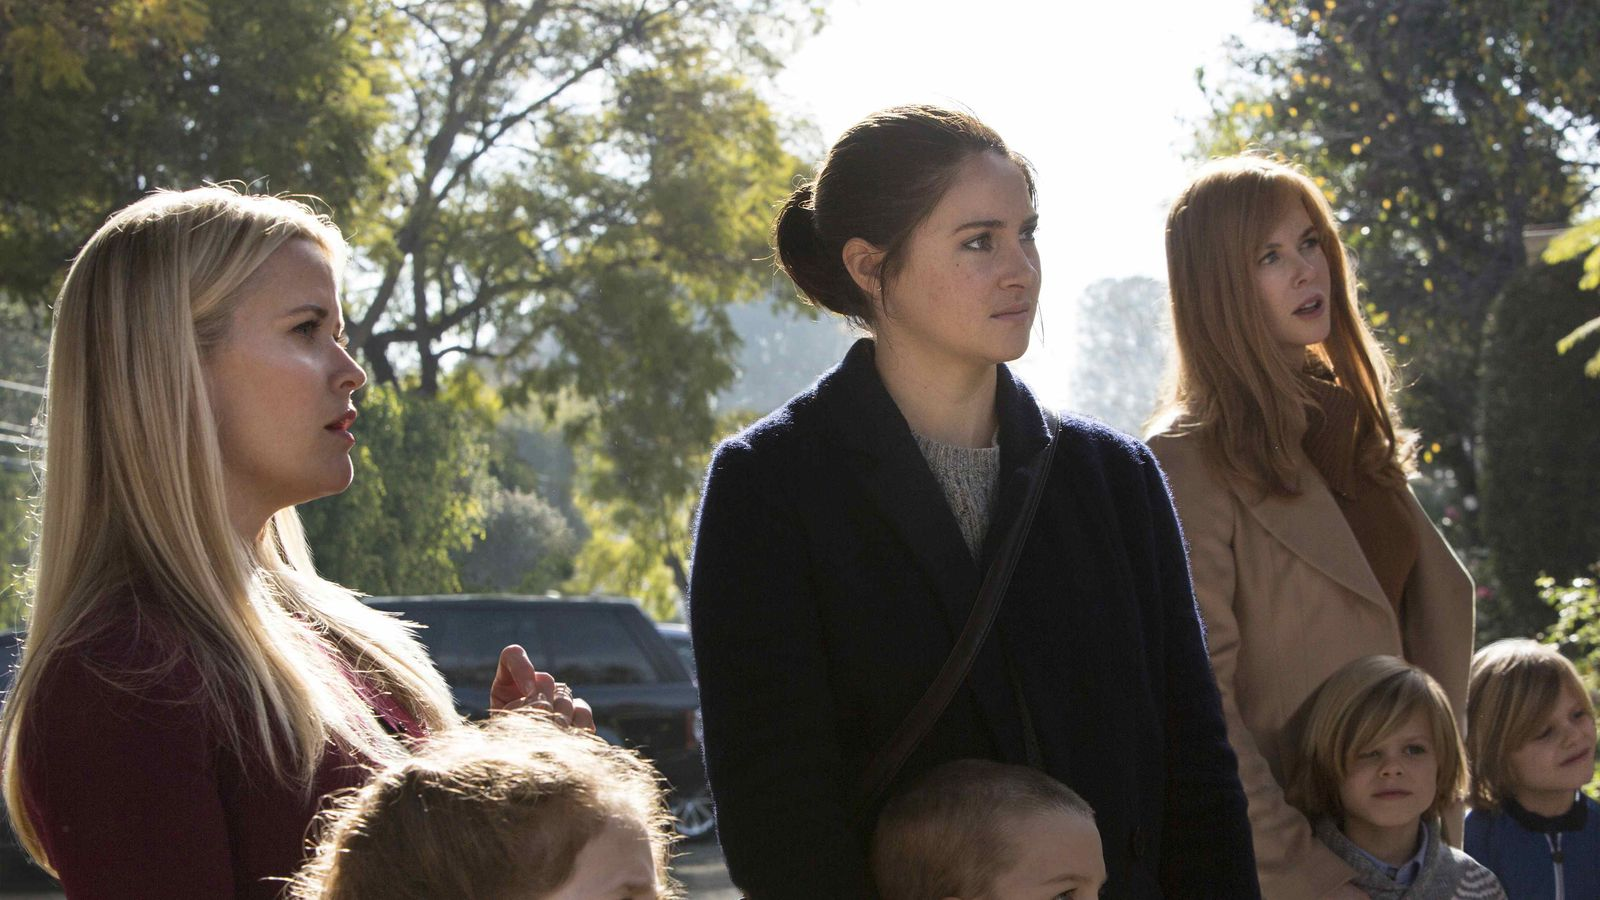 HBO's Big Little Lies miniseries: reviews and recaps - Vox